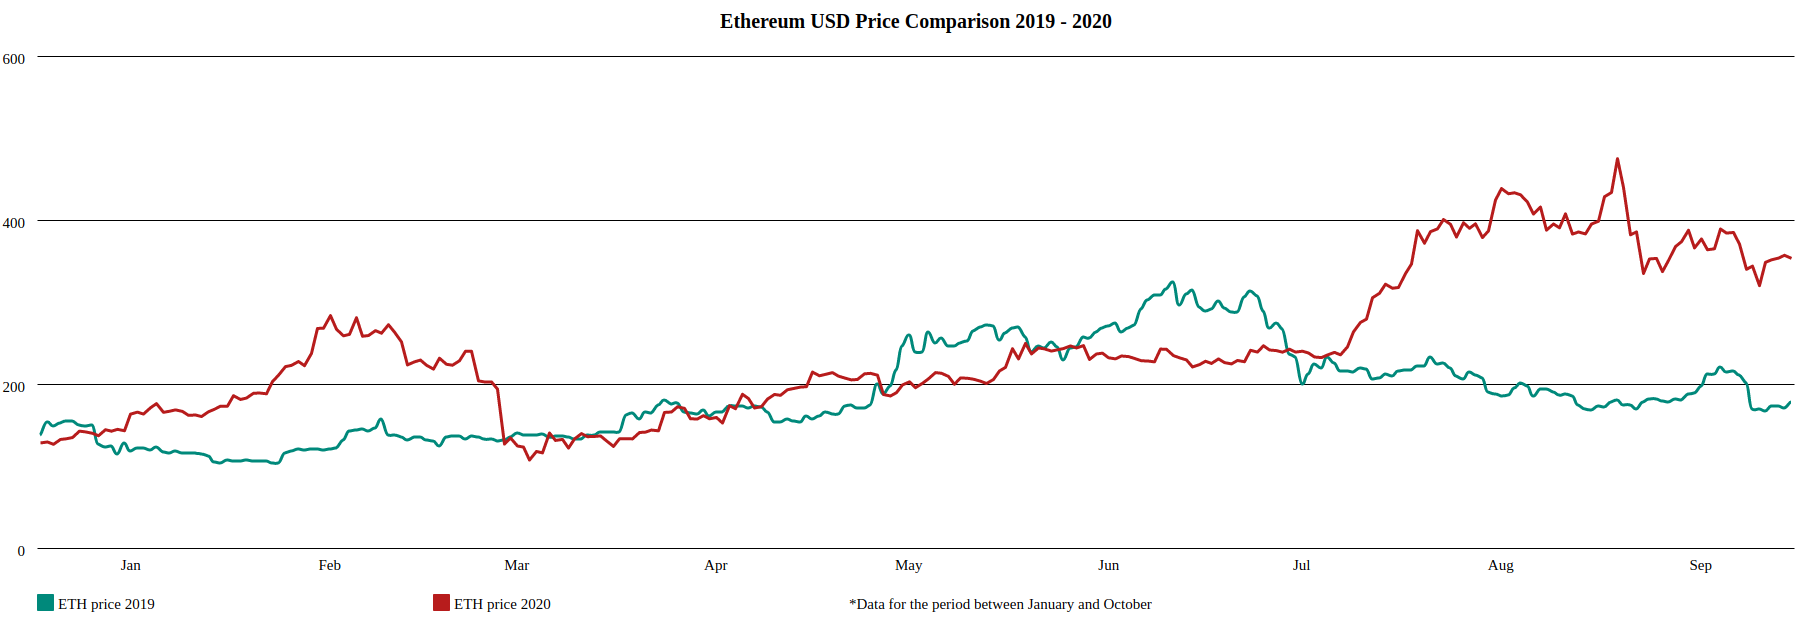 Comparison of ETH 2019 price with ETH 2020 price for the period between January and October